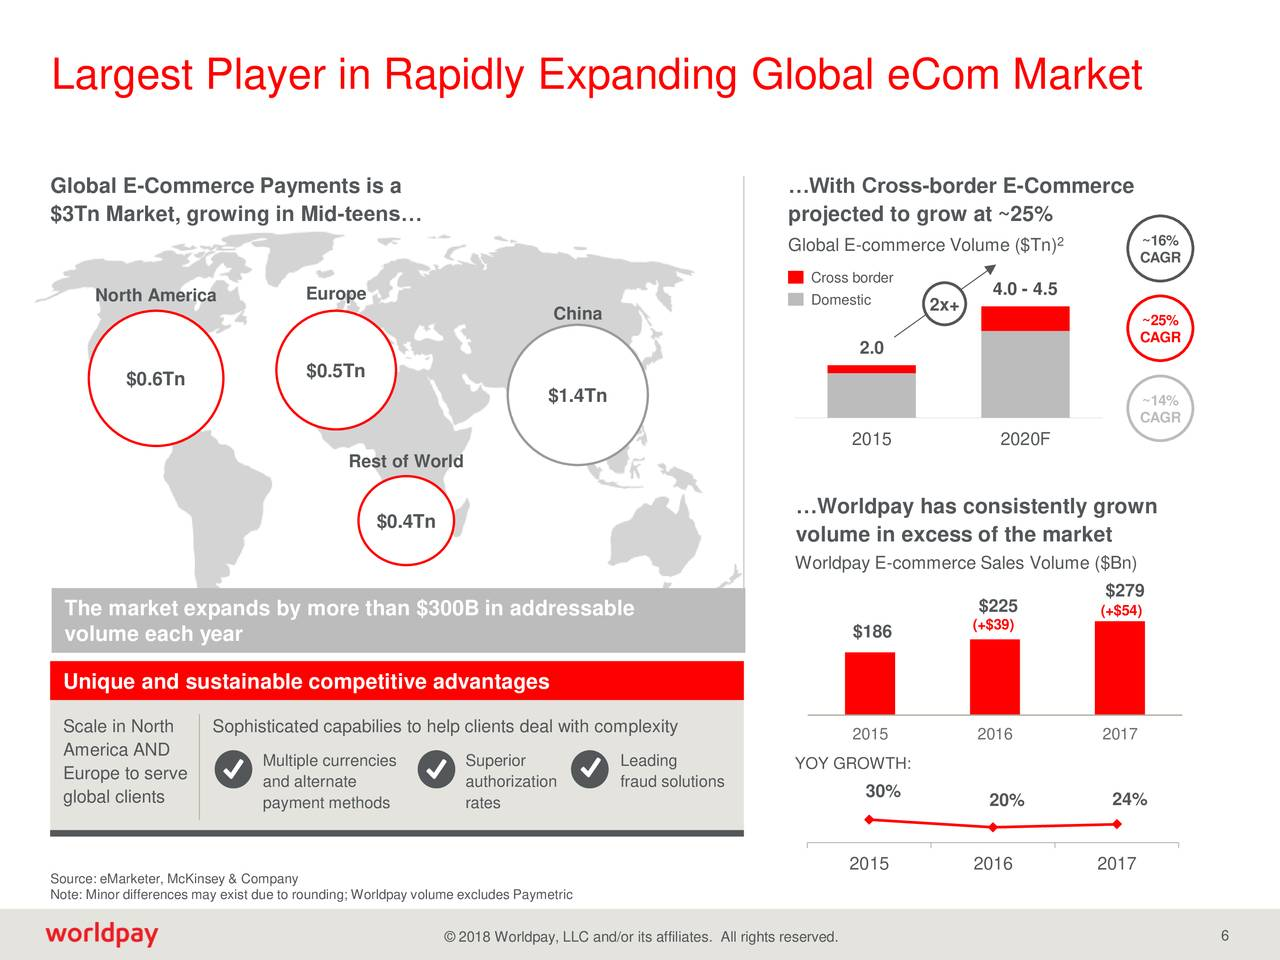 Worldpay: An Underappreciated Giant - Worldpay, Inc  (NYSE